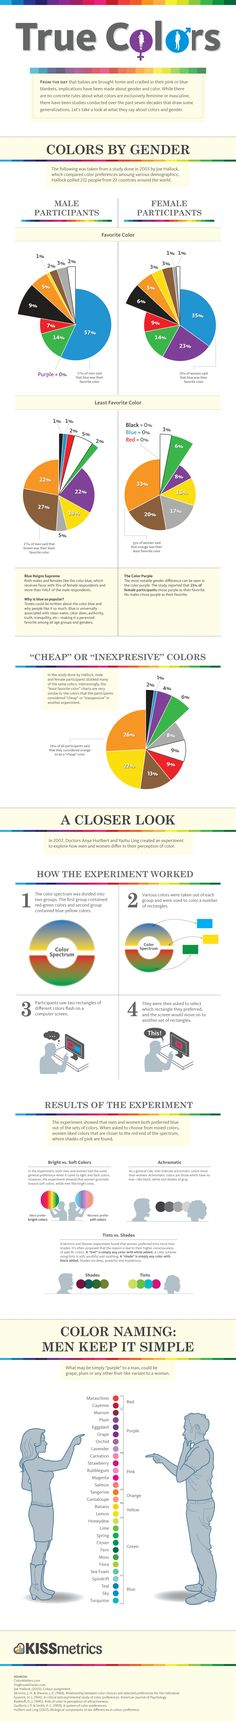 True Colors – Breakdown of Color Preferences by Gender